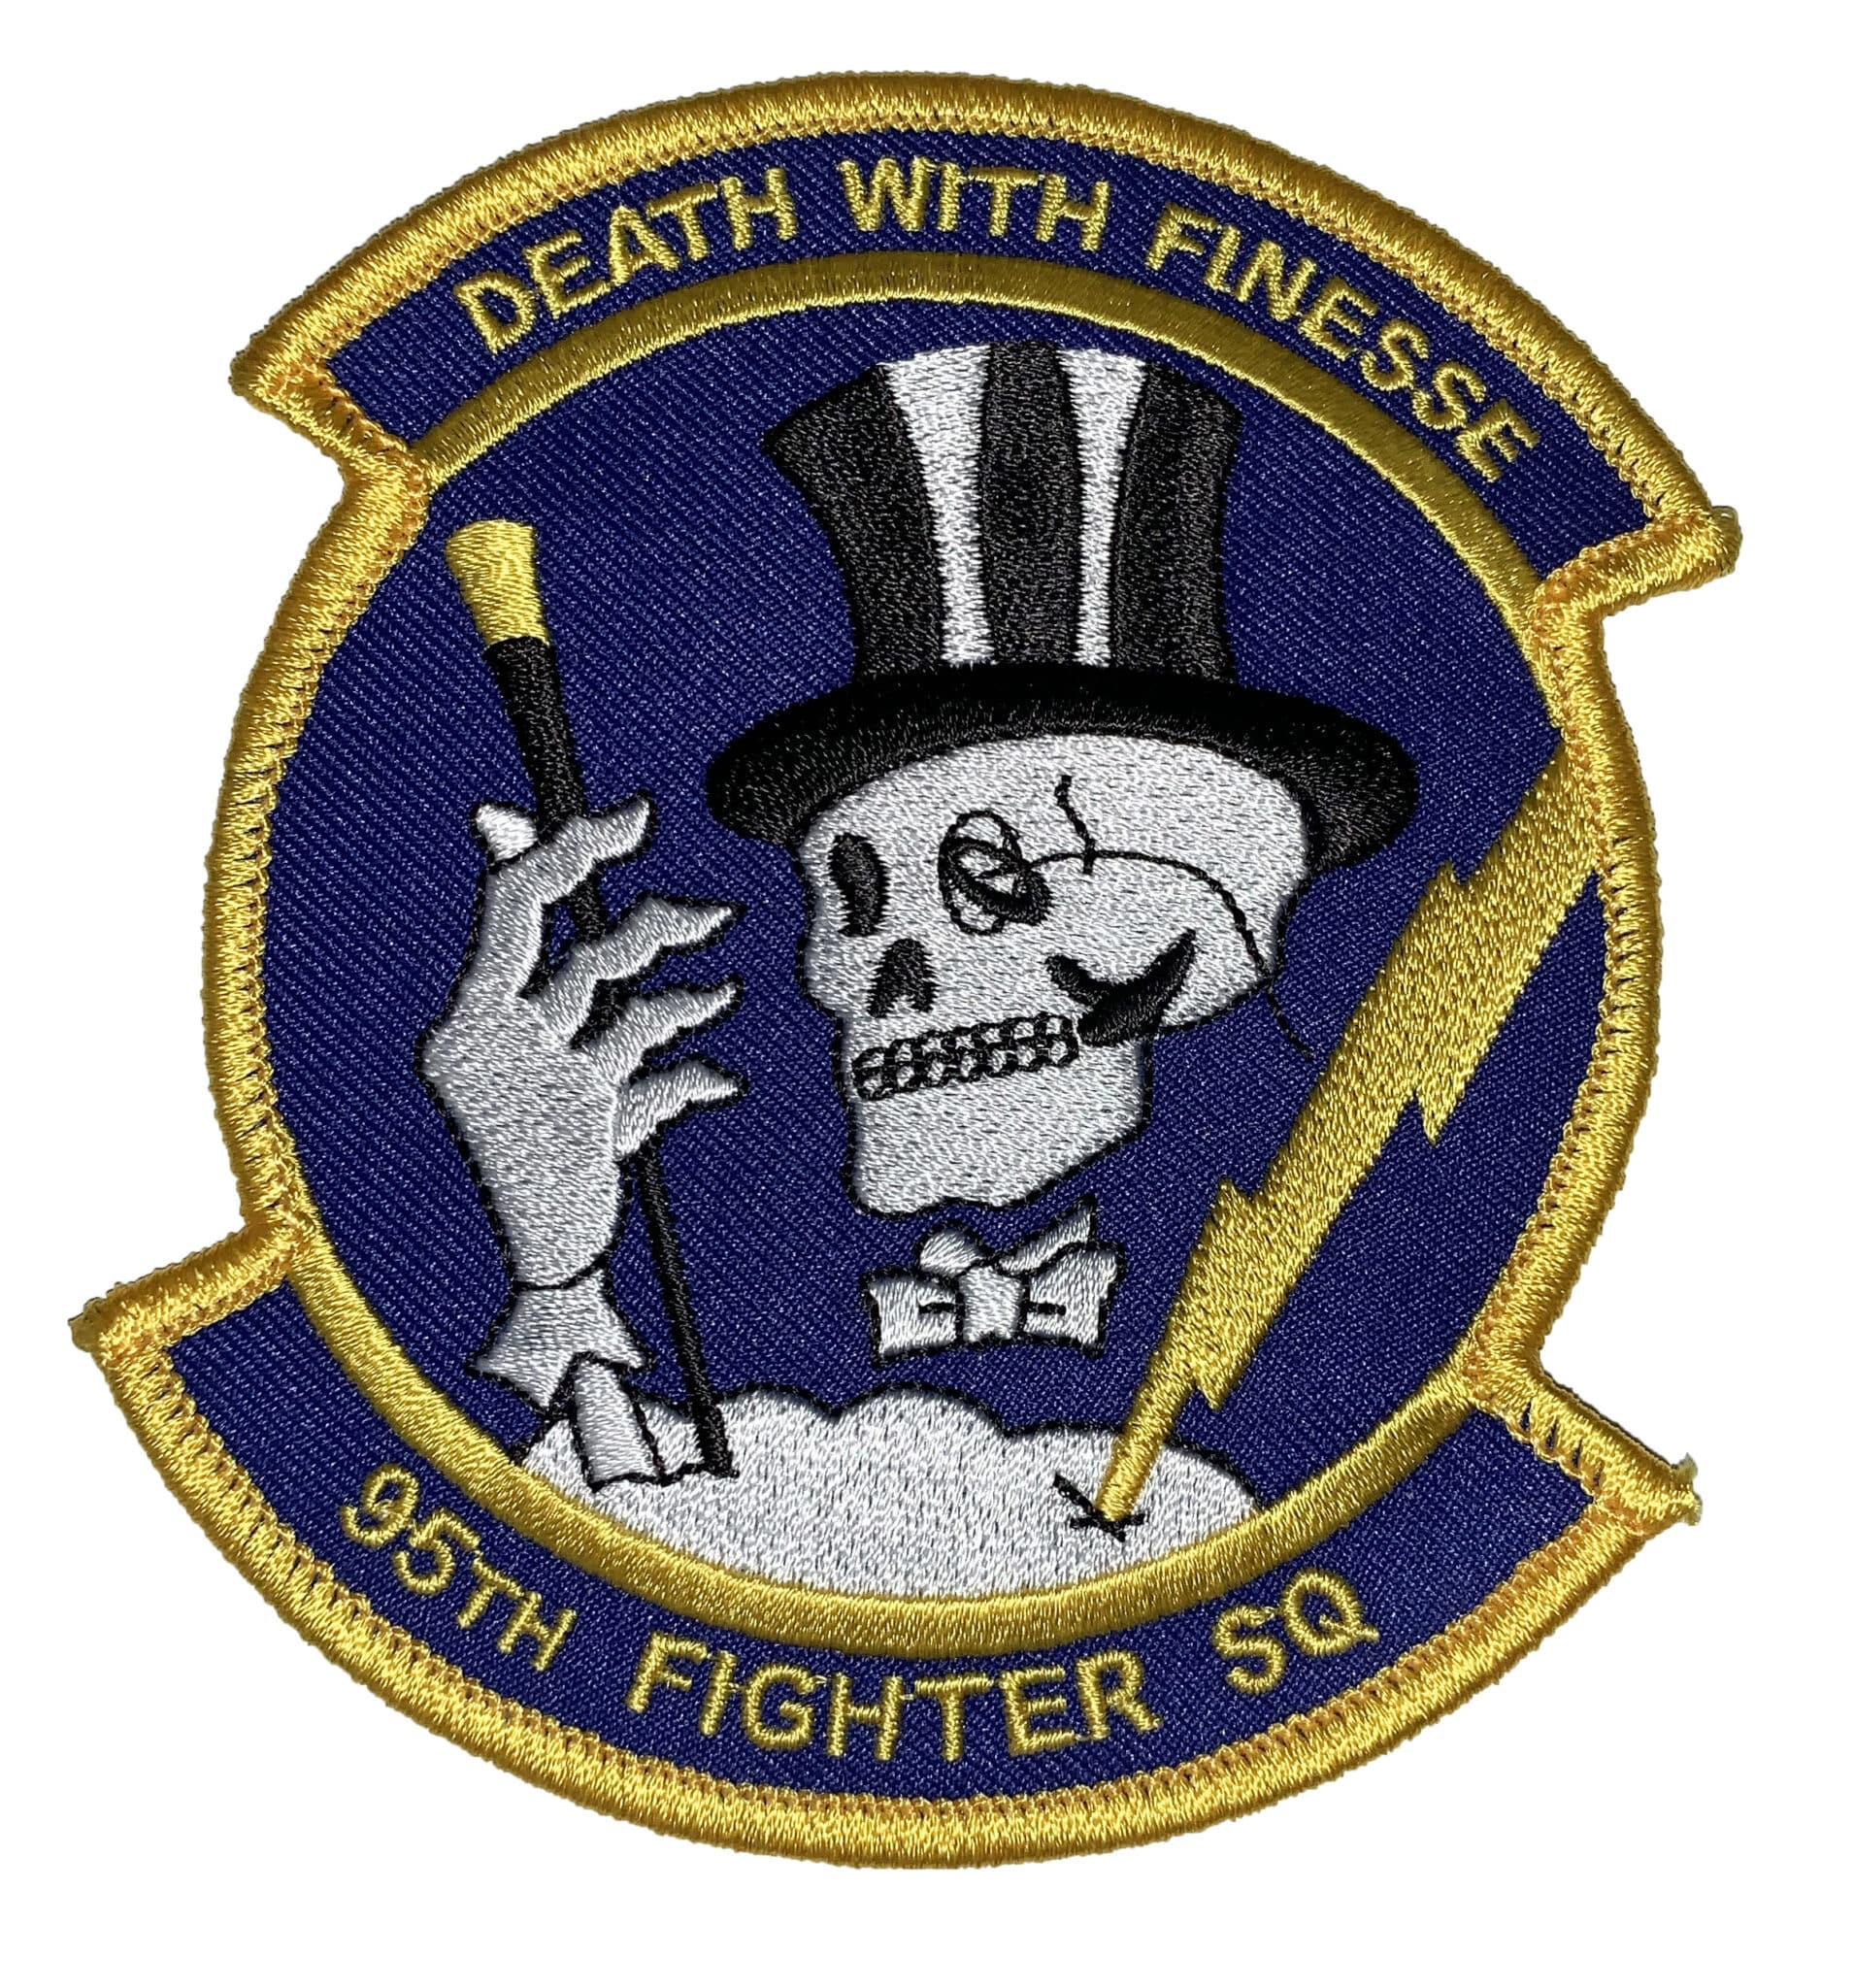 95th Fighter Squadron DEATH WITH FINESSE Patch – Sew On